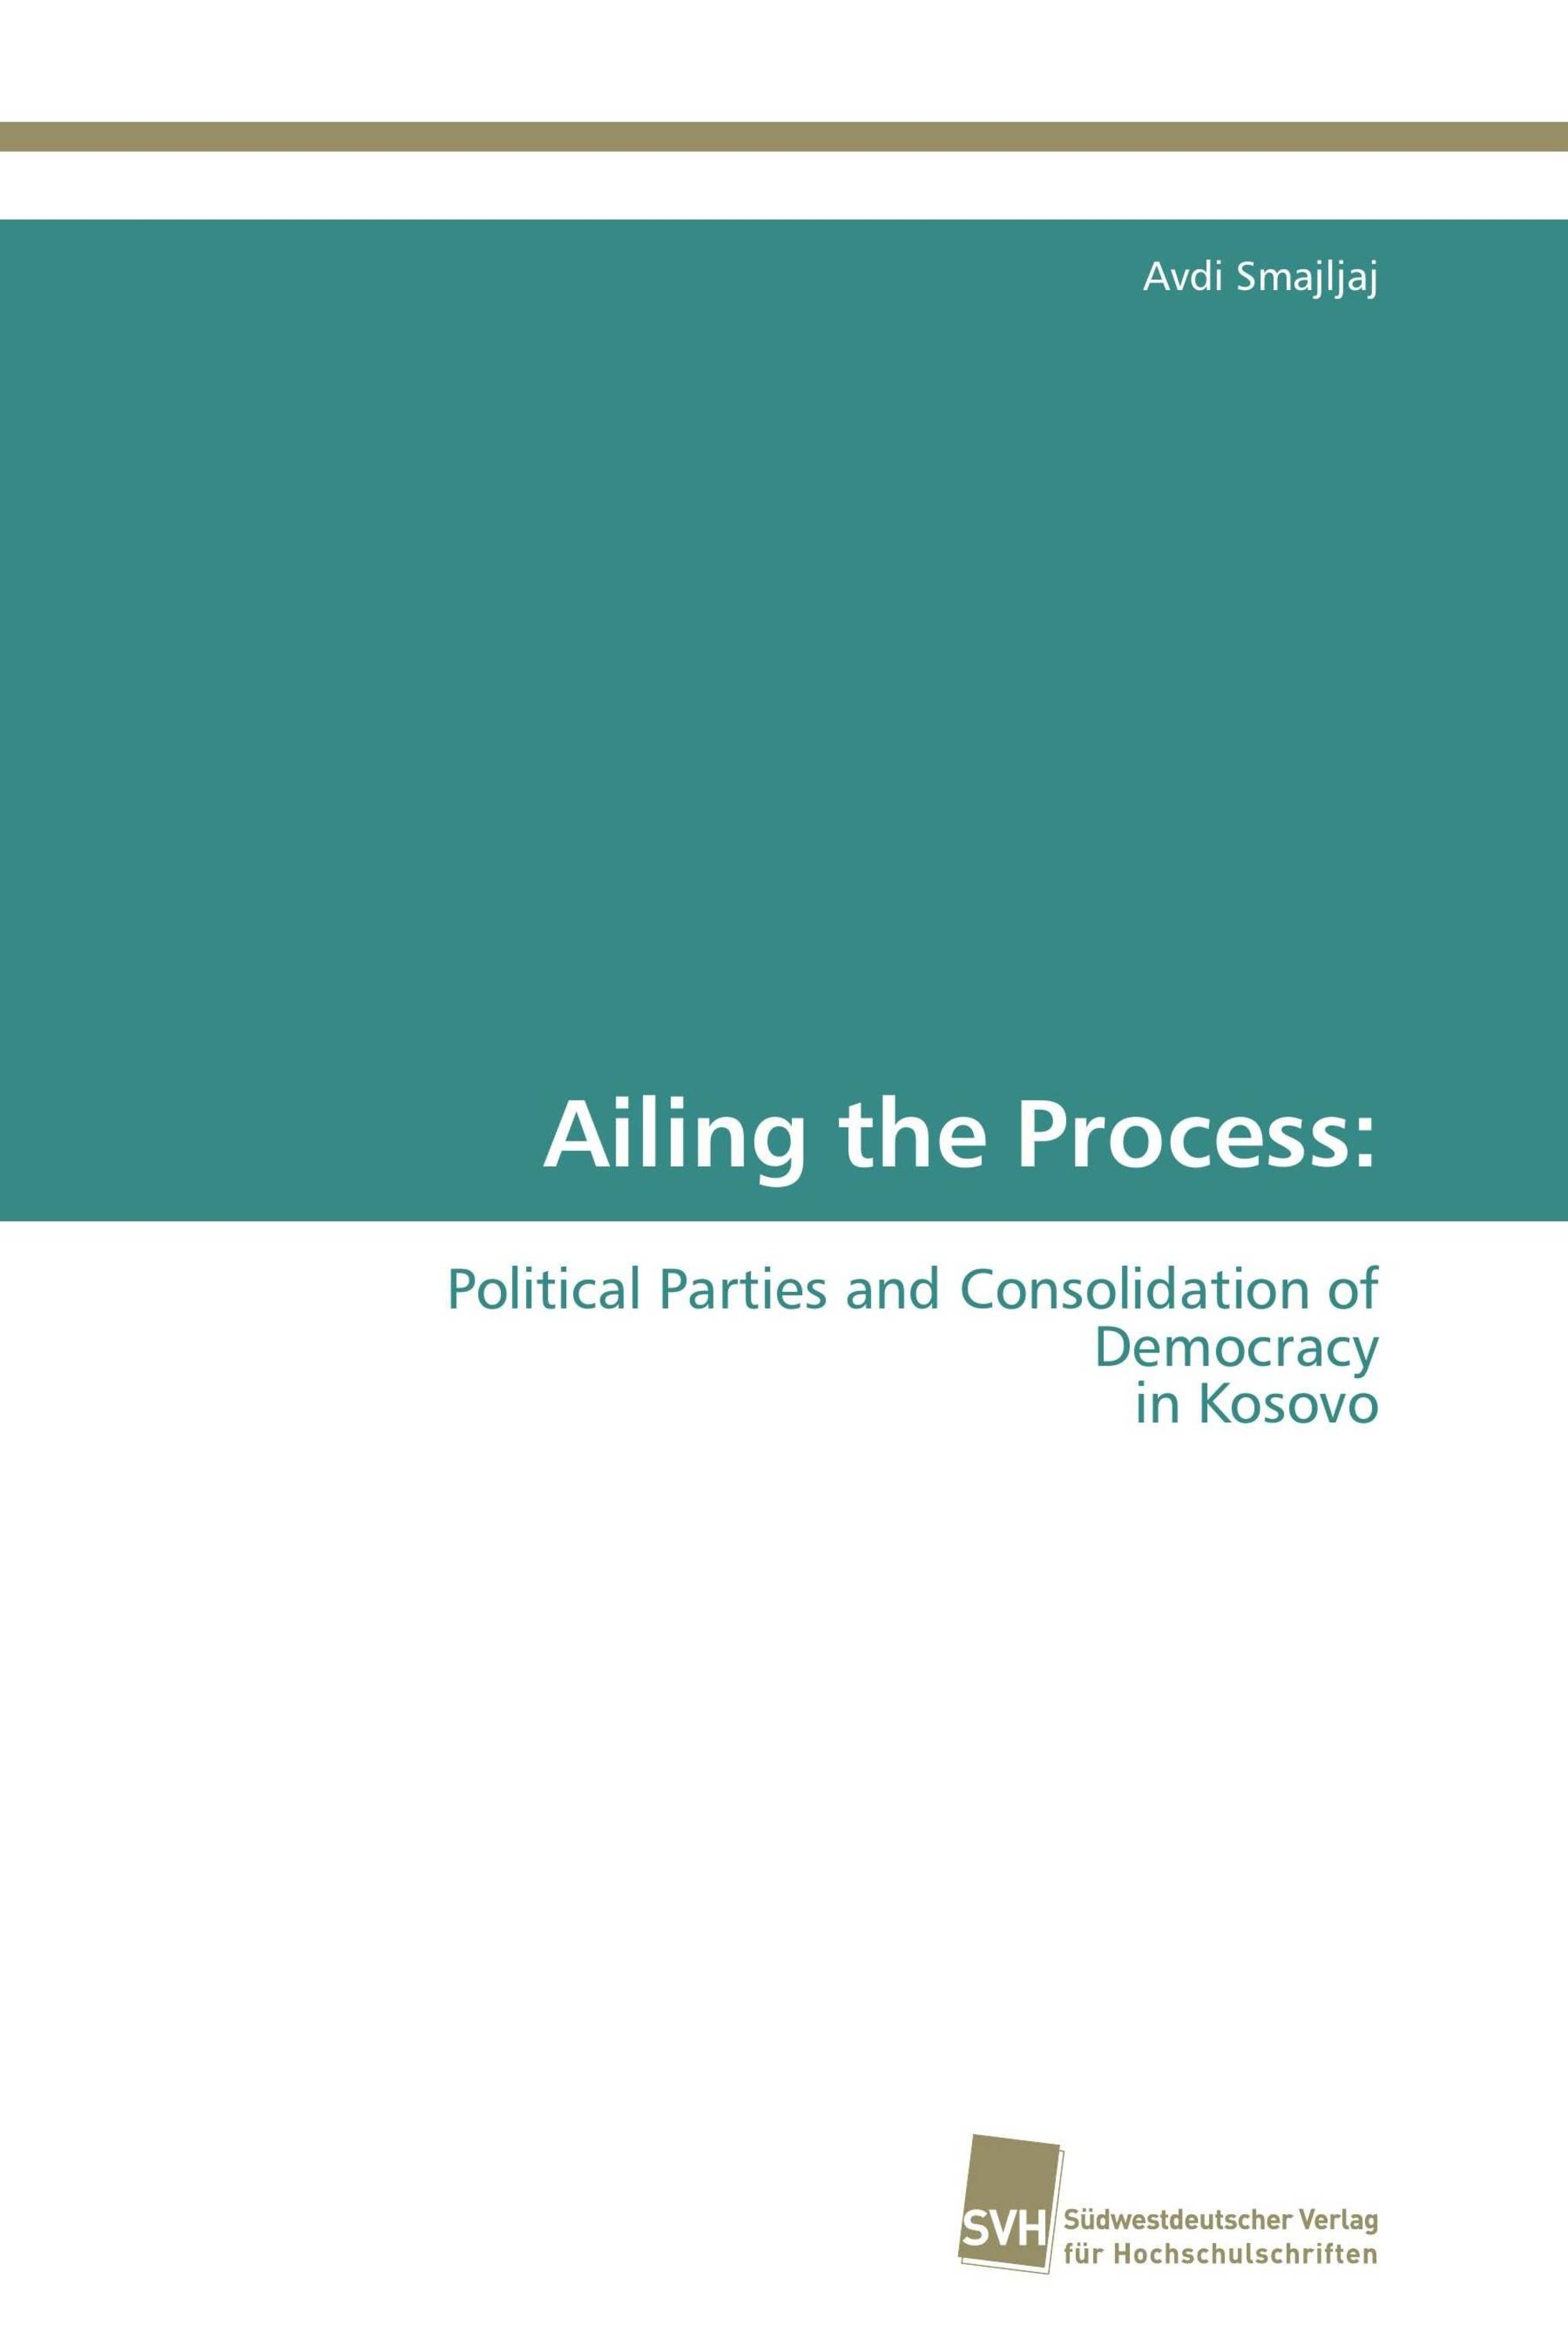 the process of democratic consodilation in